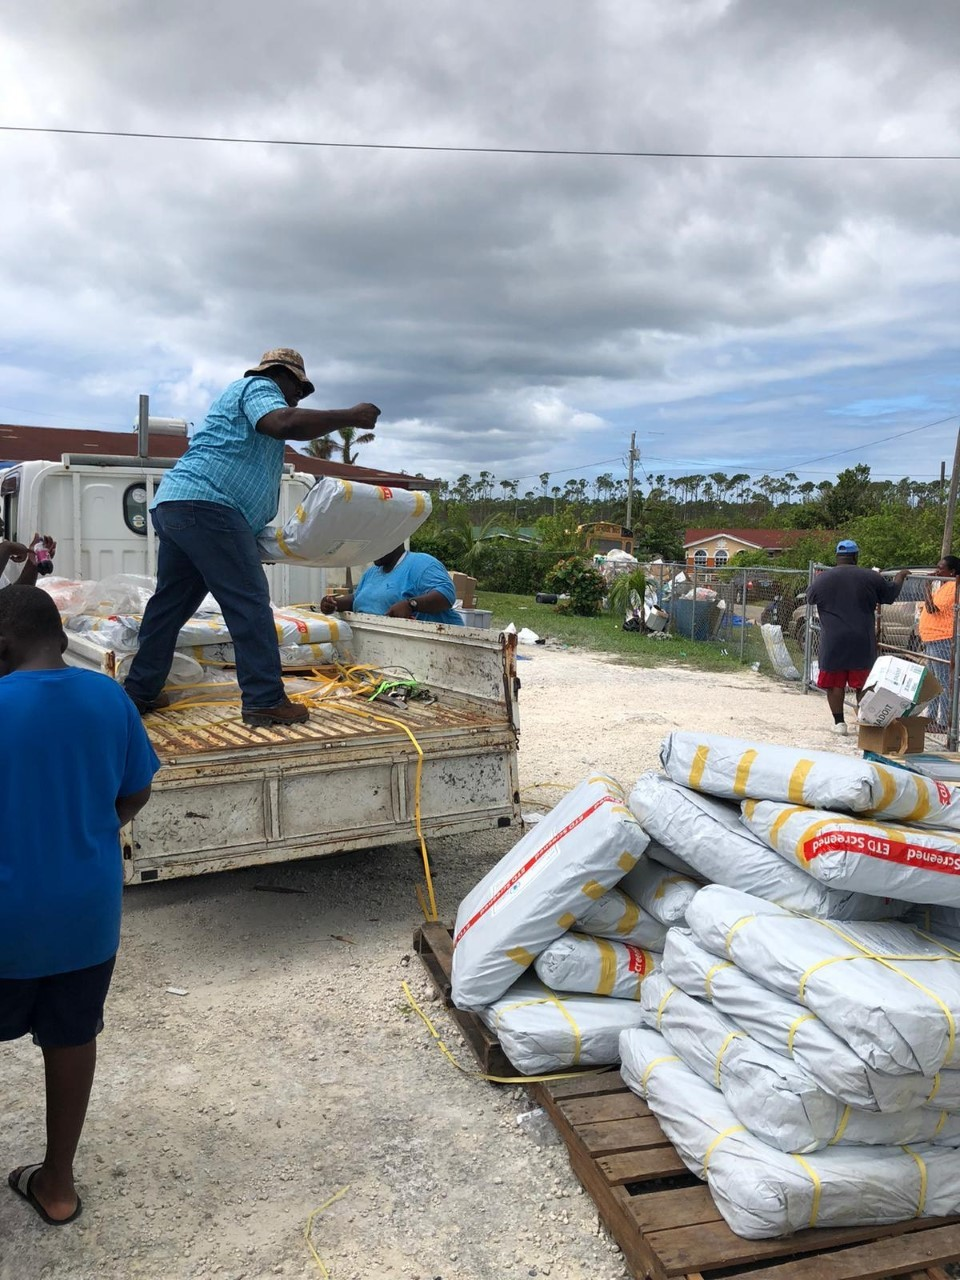 <p>Local responders distribute supplies in the Bahamas after Hurricane Dorian. Photo by Jerry Christopher Butler.</p>